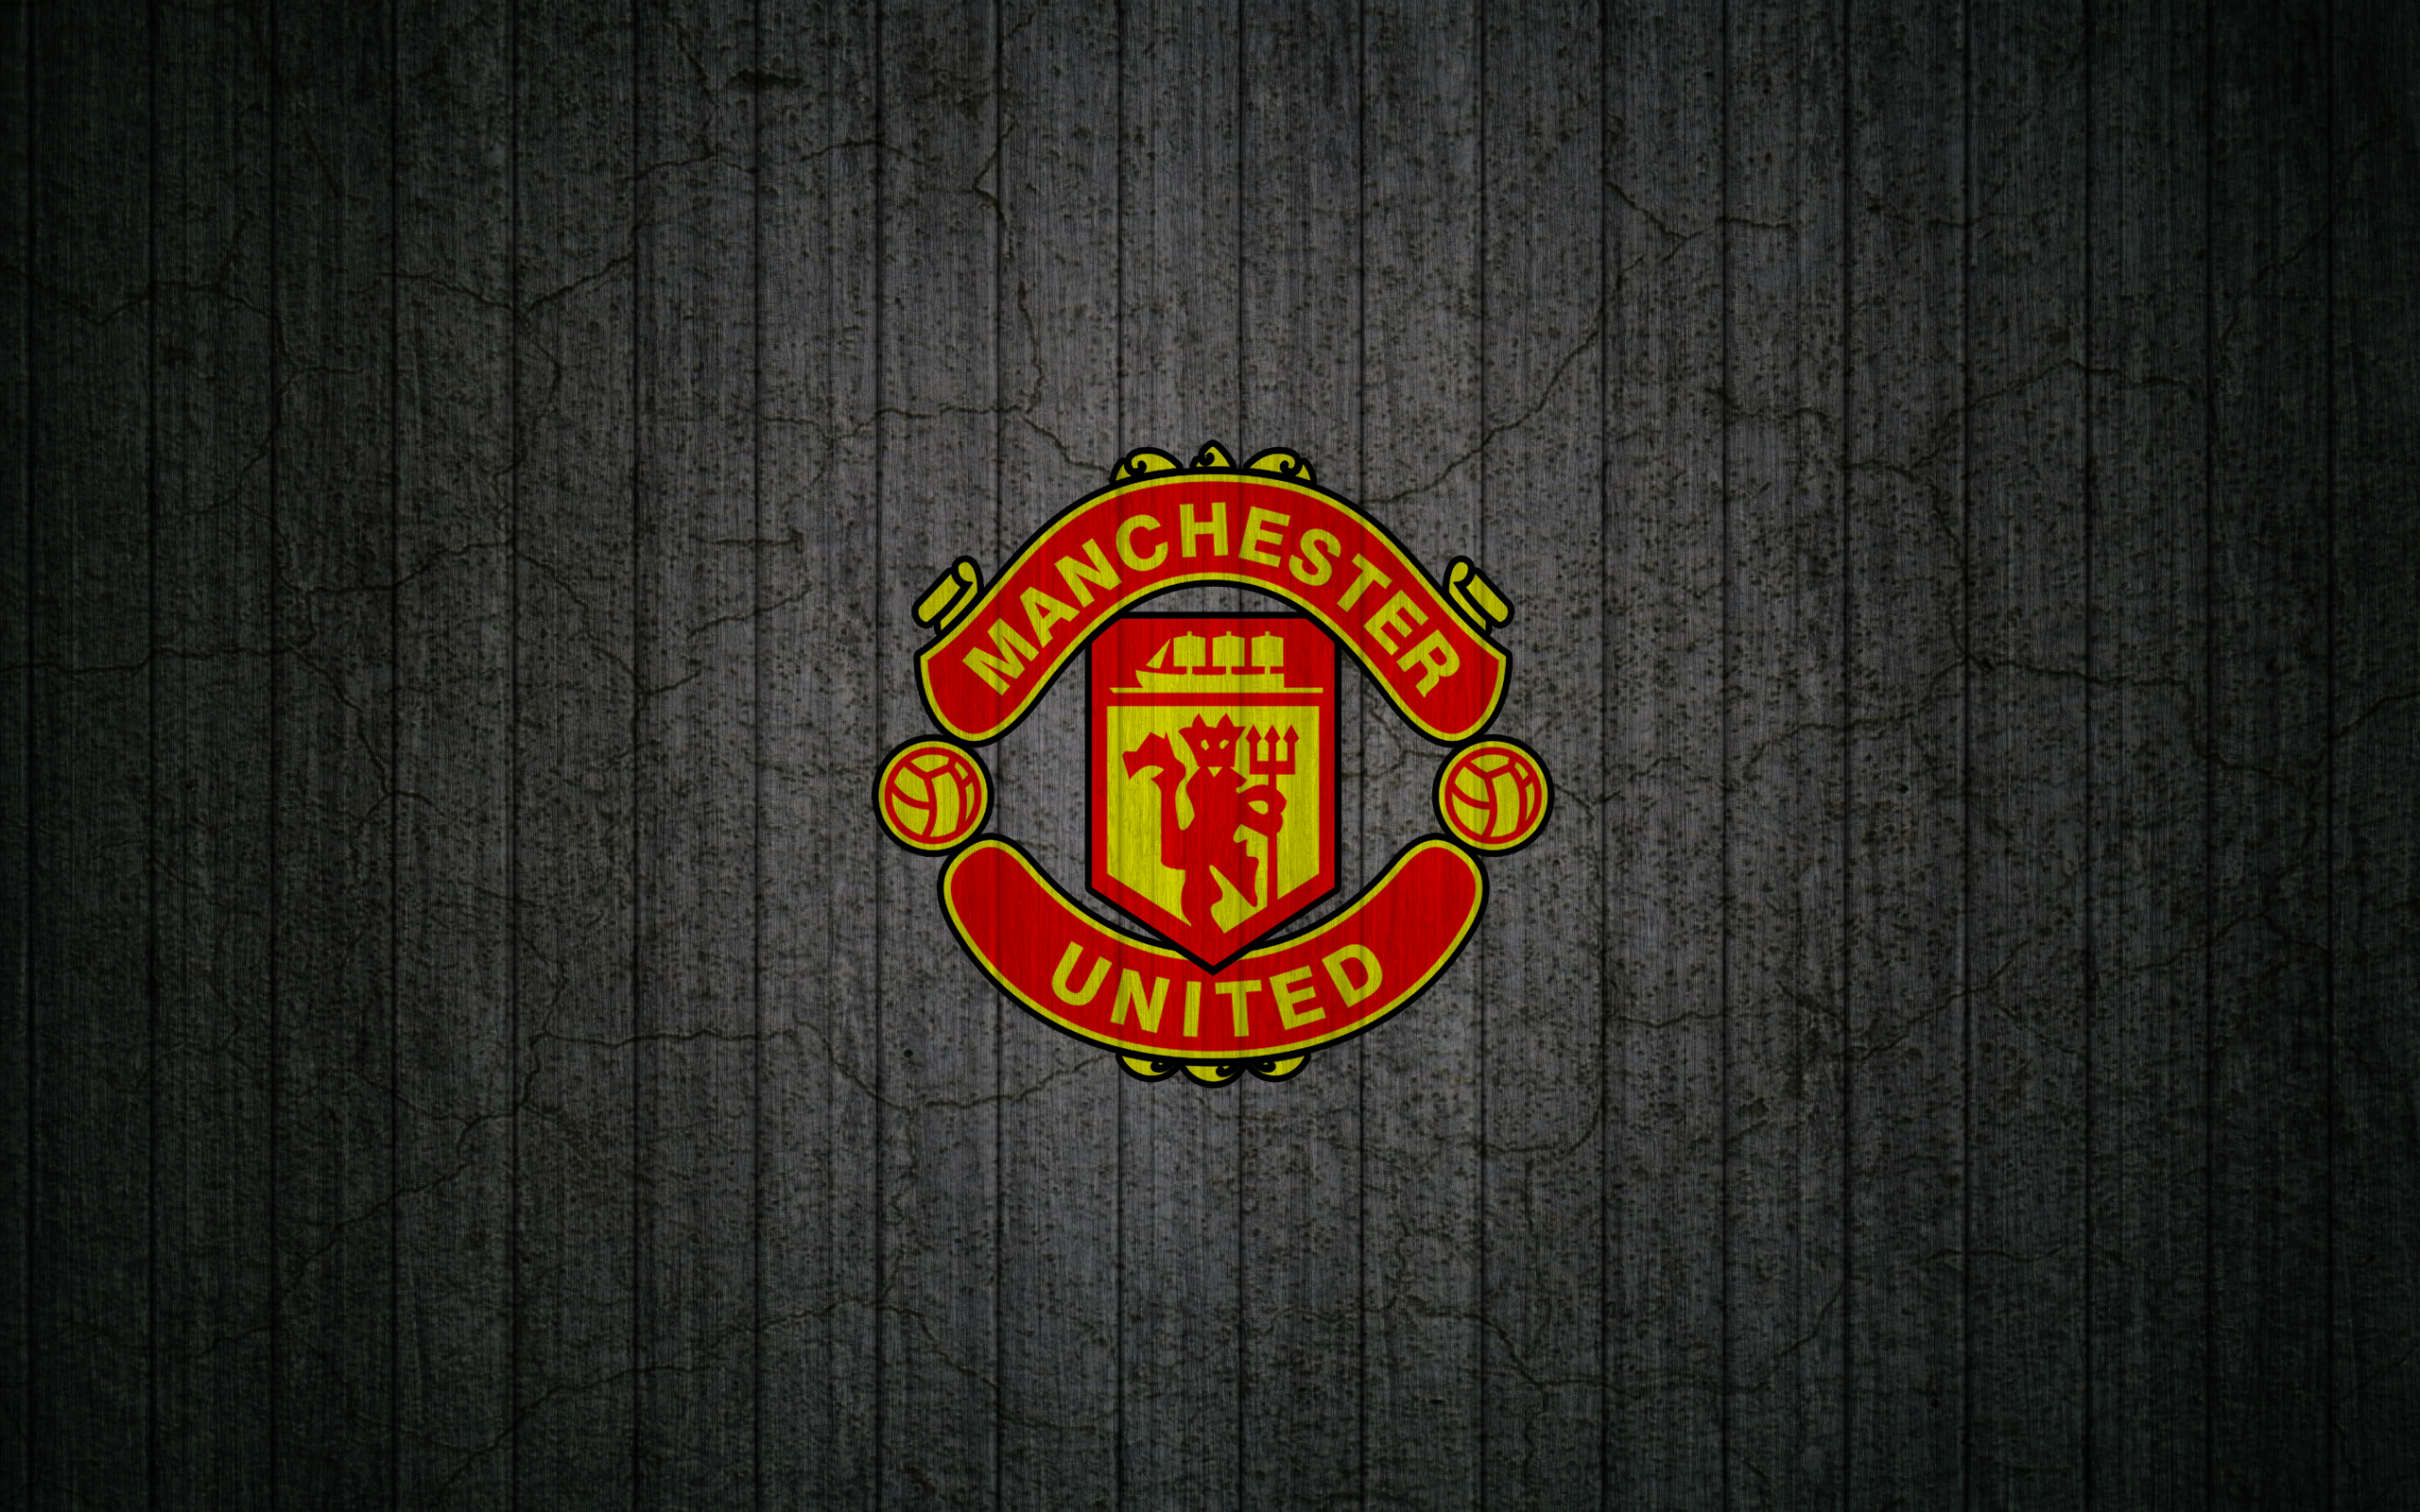 Awesome manchester united wallpapers sharovarka pinterest awesome manchester united wallpapers voltagebd Choice Image